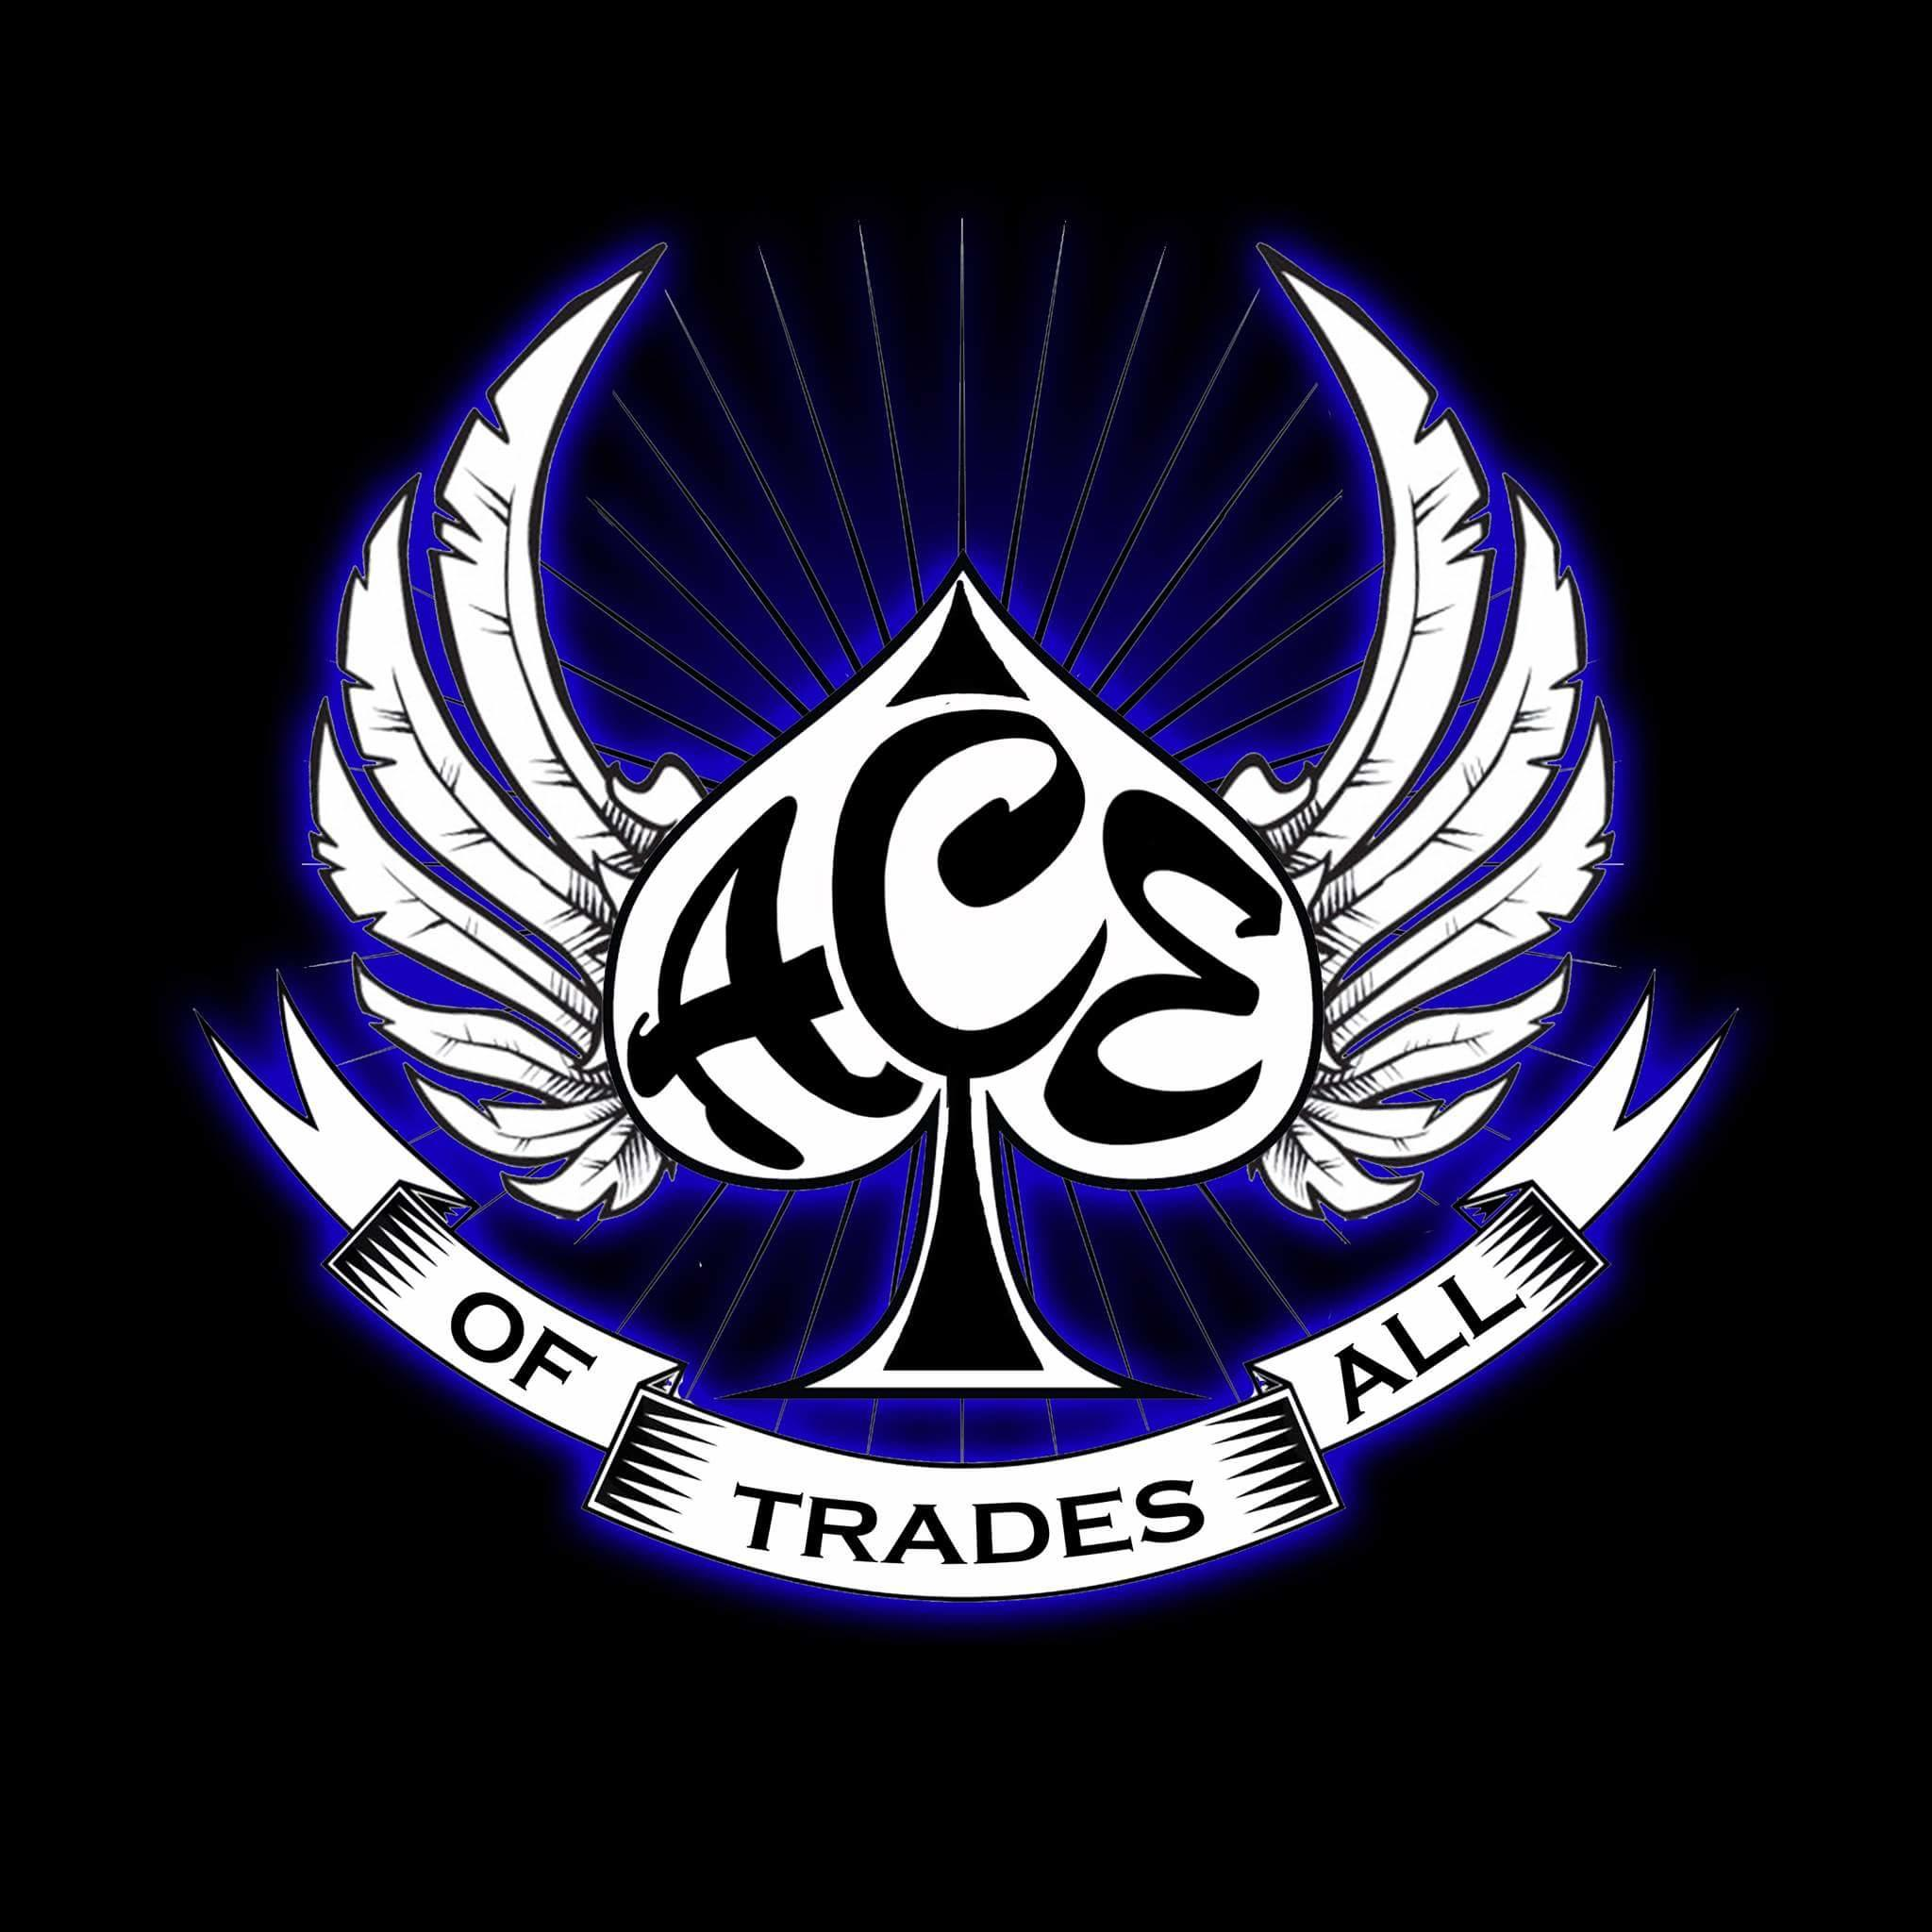 Ace of All Trades